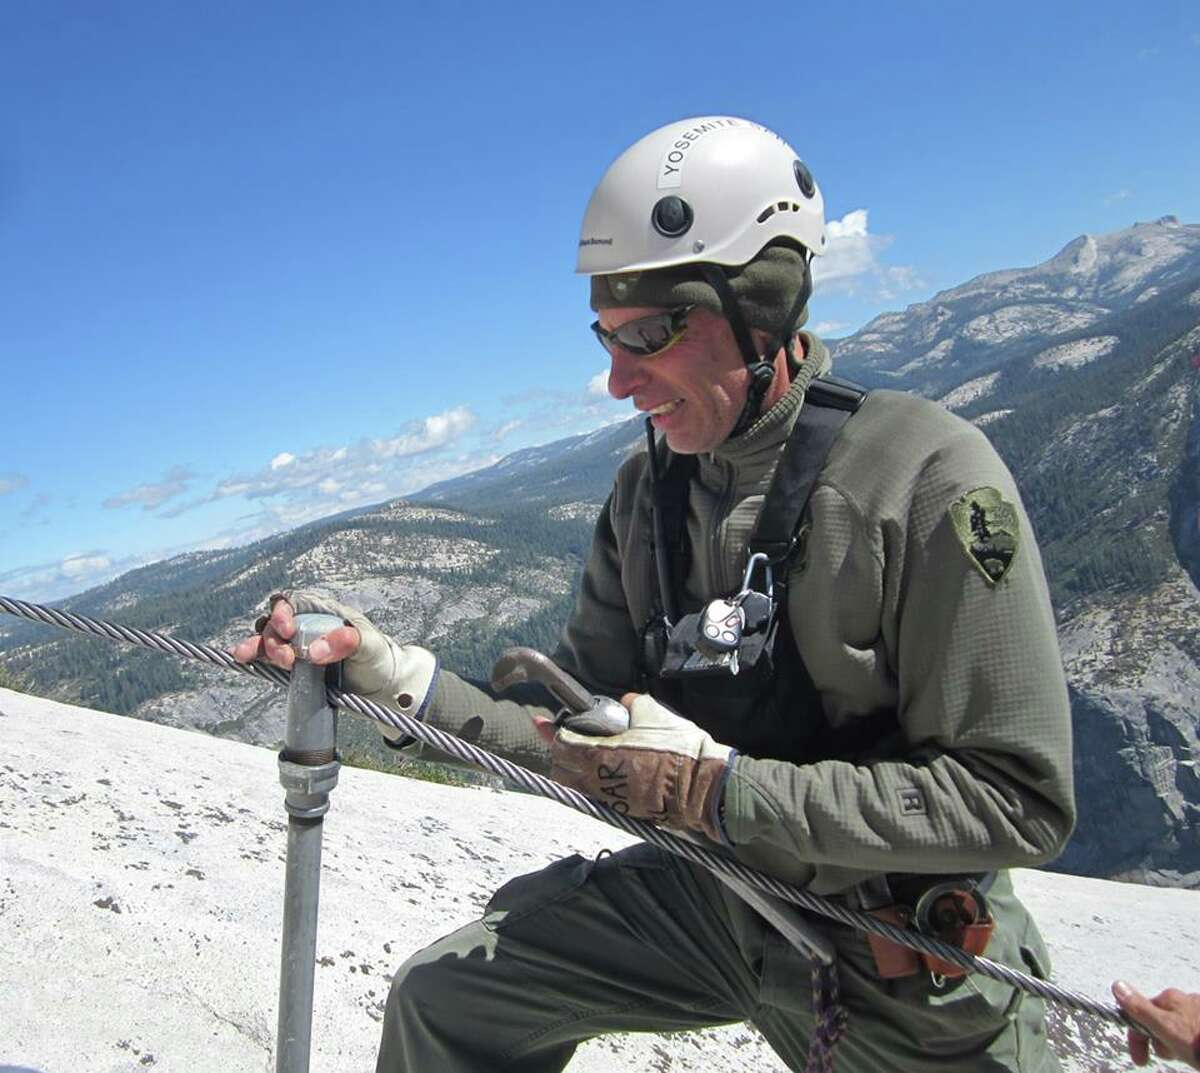 Hiking to the top of Half Dome:The cables usually go up on Yosemite's Half Dome the Friday before Memorial Day, but not this year. These have also been delayed by the severe winter.